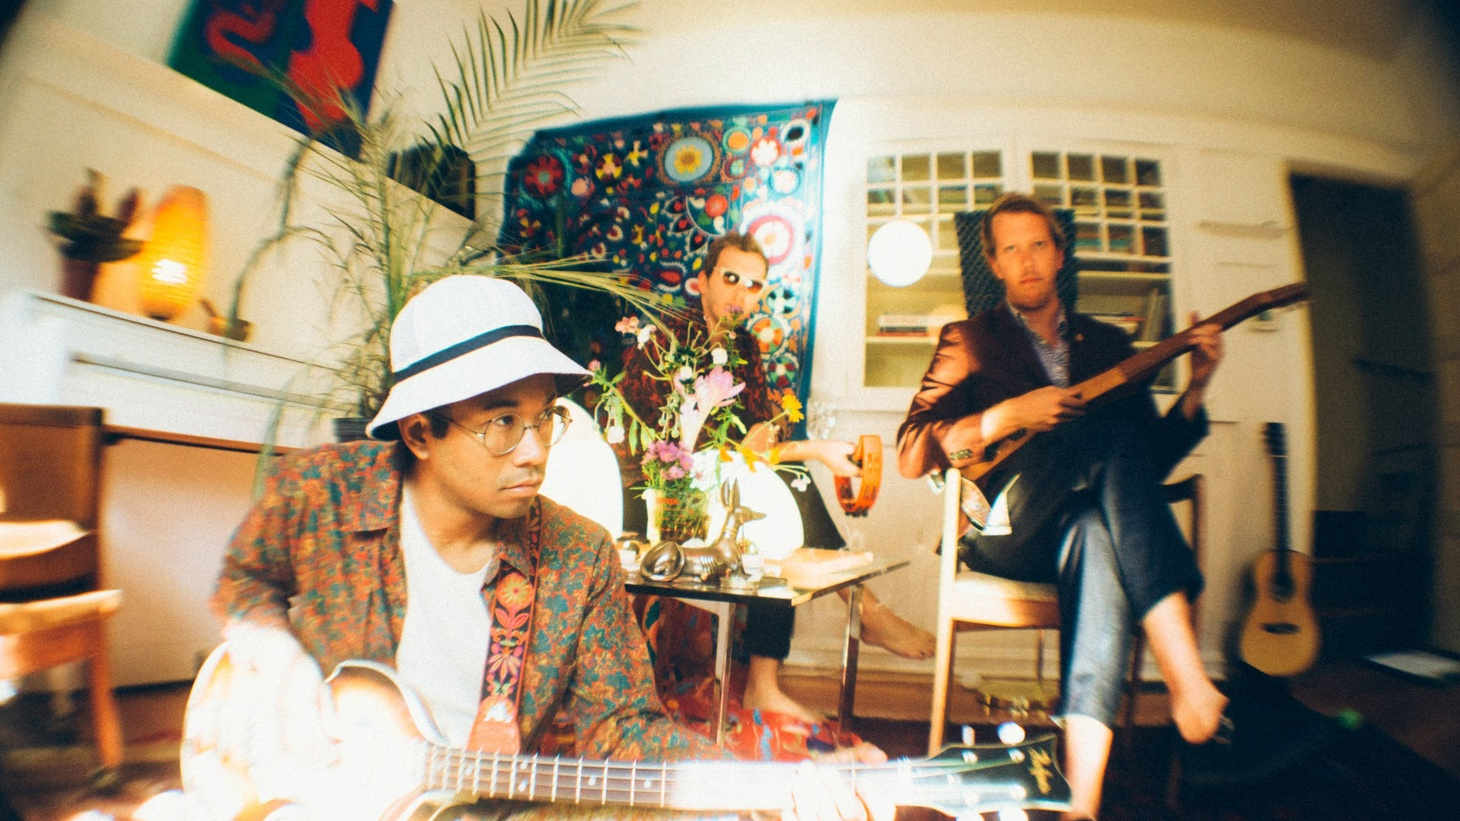 The Mattson 2 and Chaz Bundick, aka Toro Y Moi, met when Chaz came to the jazzy duo's rescue after having forgotten to pack a stool for a show in Oakland. He stayed for their mesmerizing sets and months later they began their collaboration.